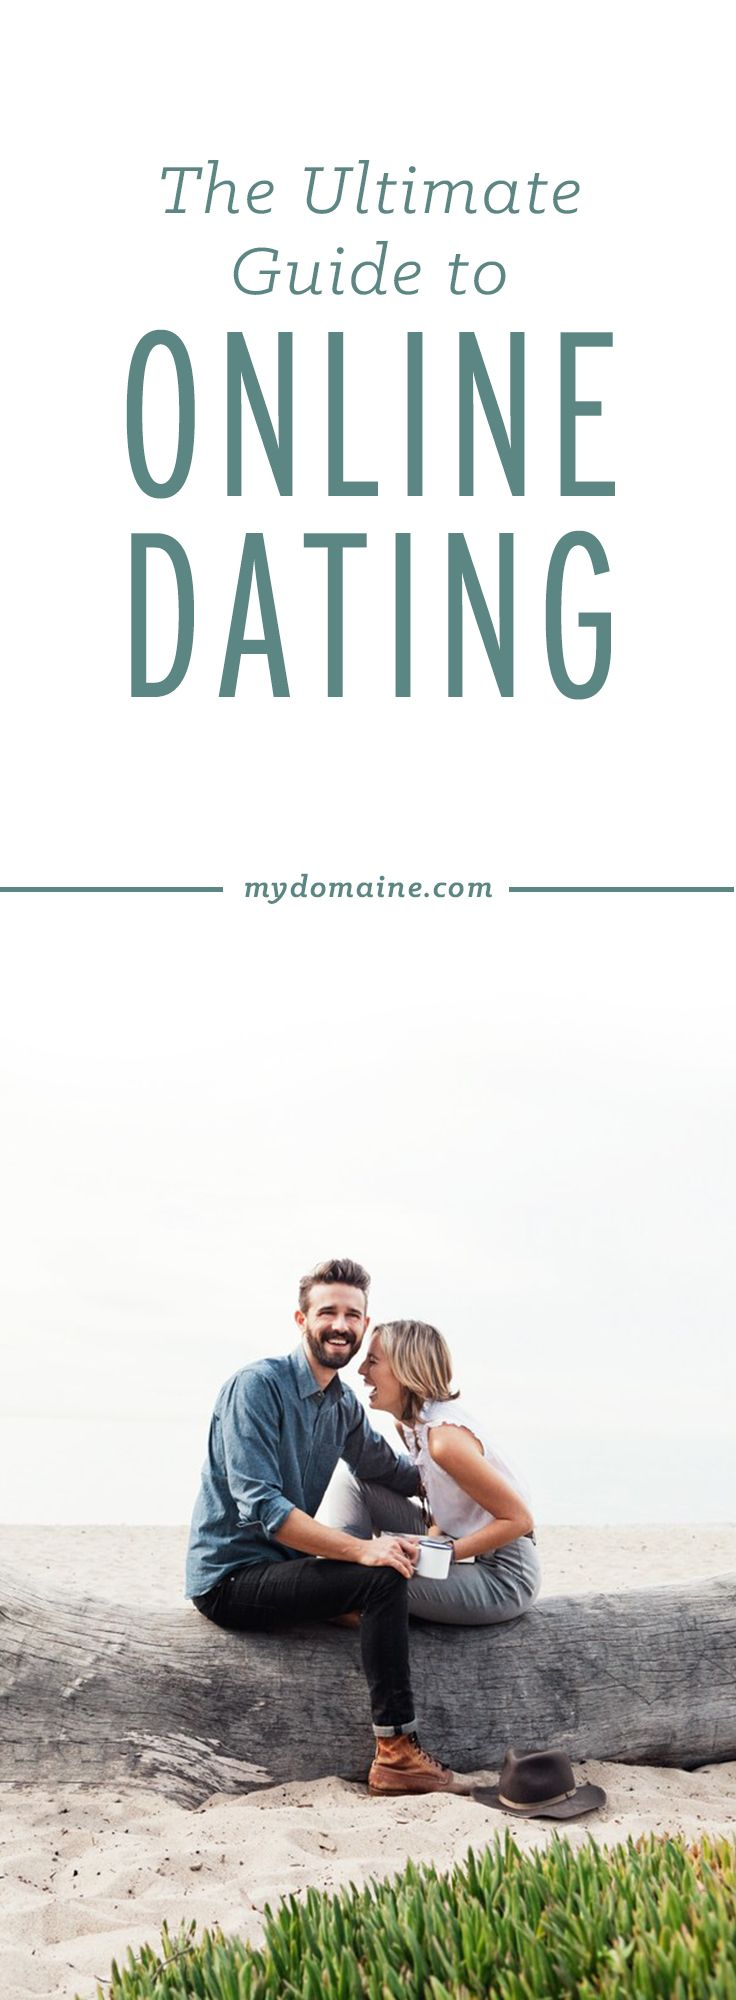 How can christians use online dating